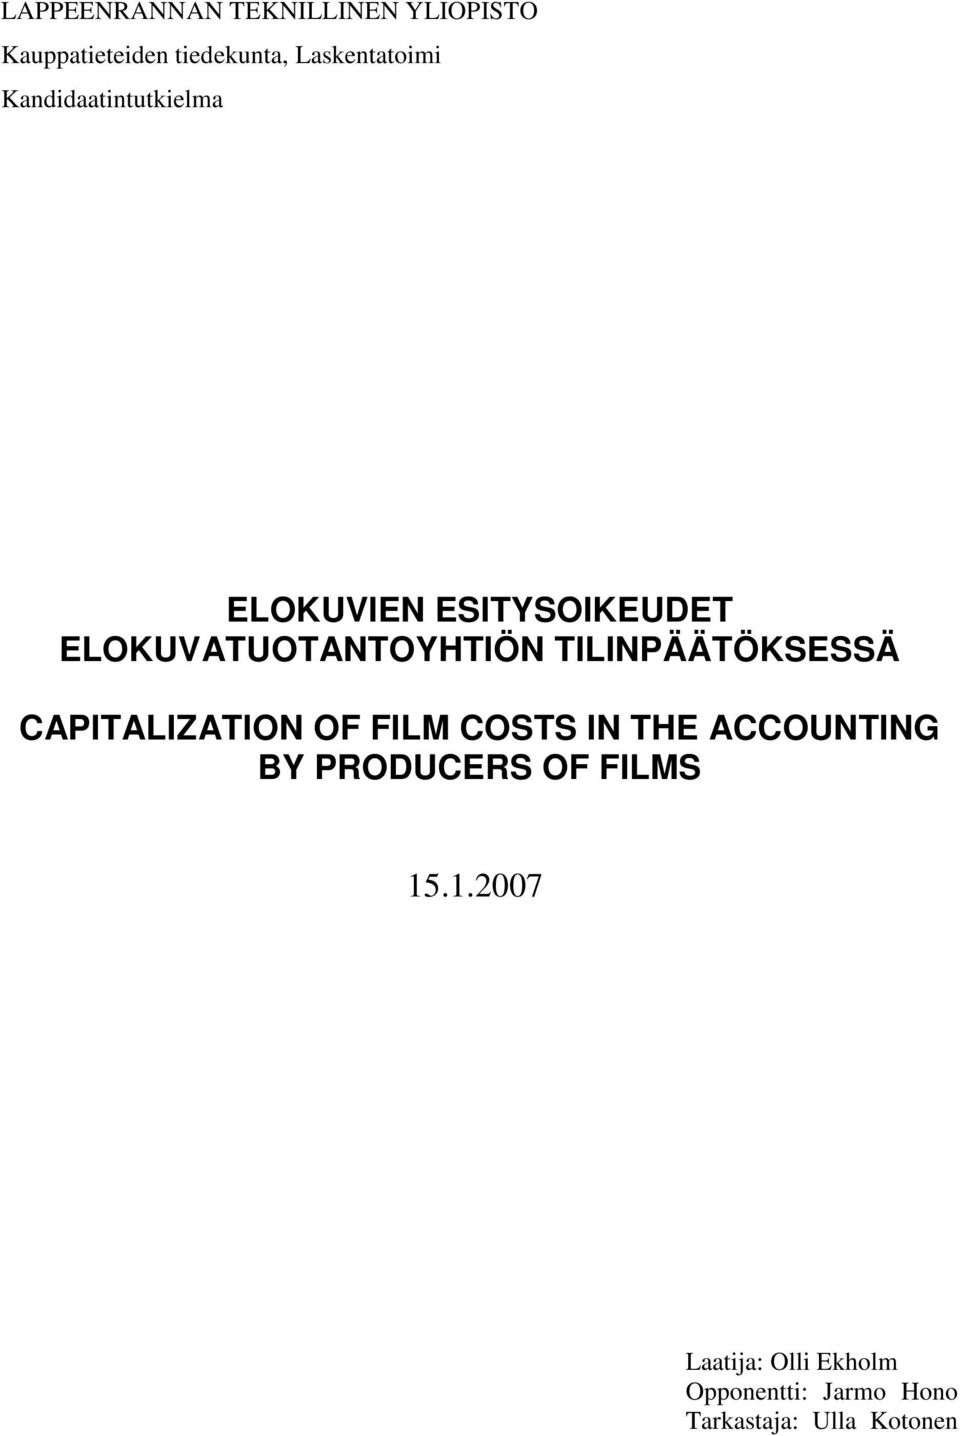 TILINPÄÄTÖKSESSÄ CAPITALIZATION OF FILM COSTS IN THE ACCOUNTING BY PRODUCERS